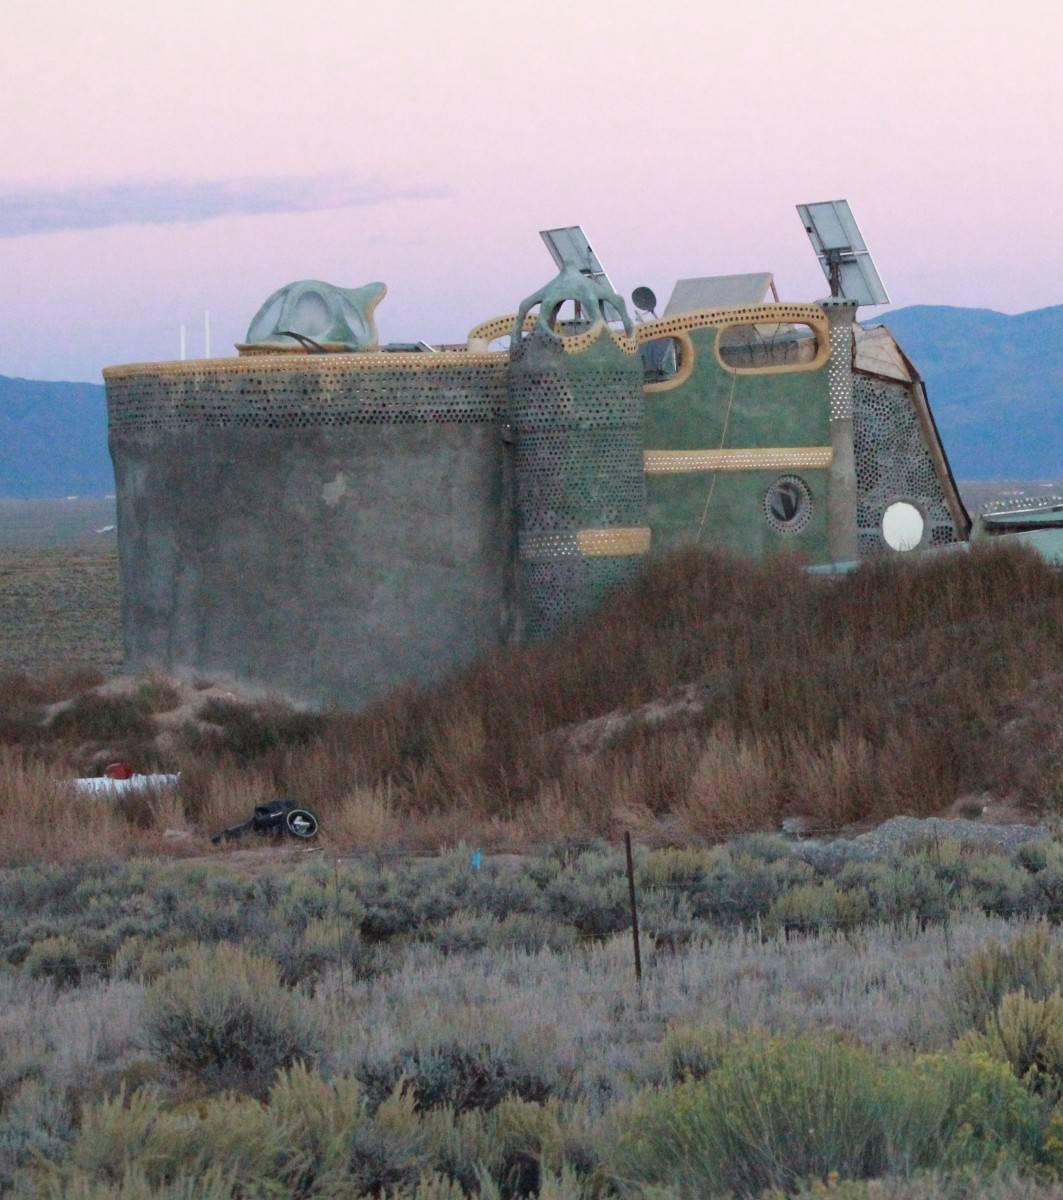 Earthship near Taos, New Mexico.  Earthships are not only made to be practical, but aesthetically pleasing, as well.